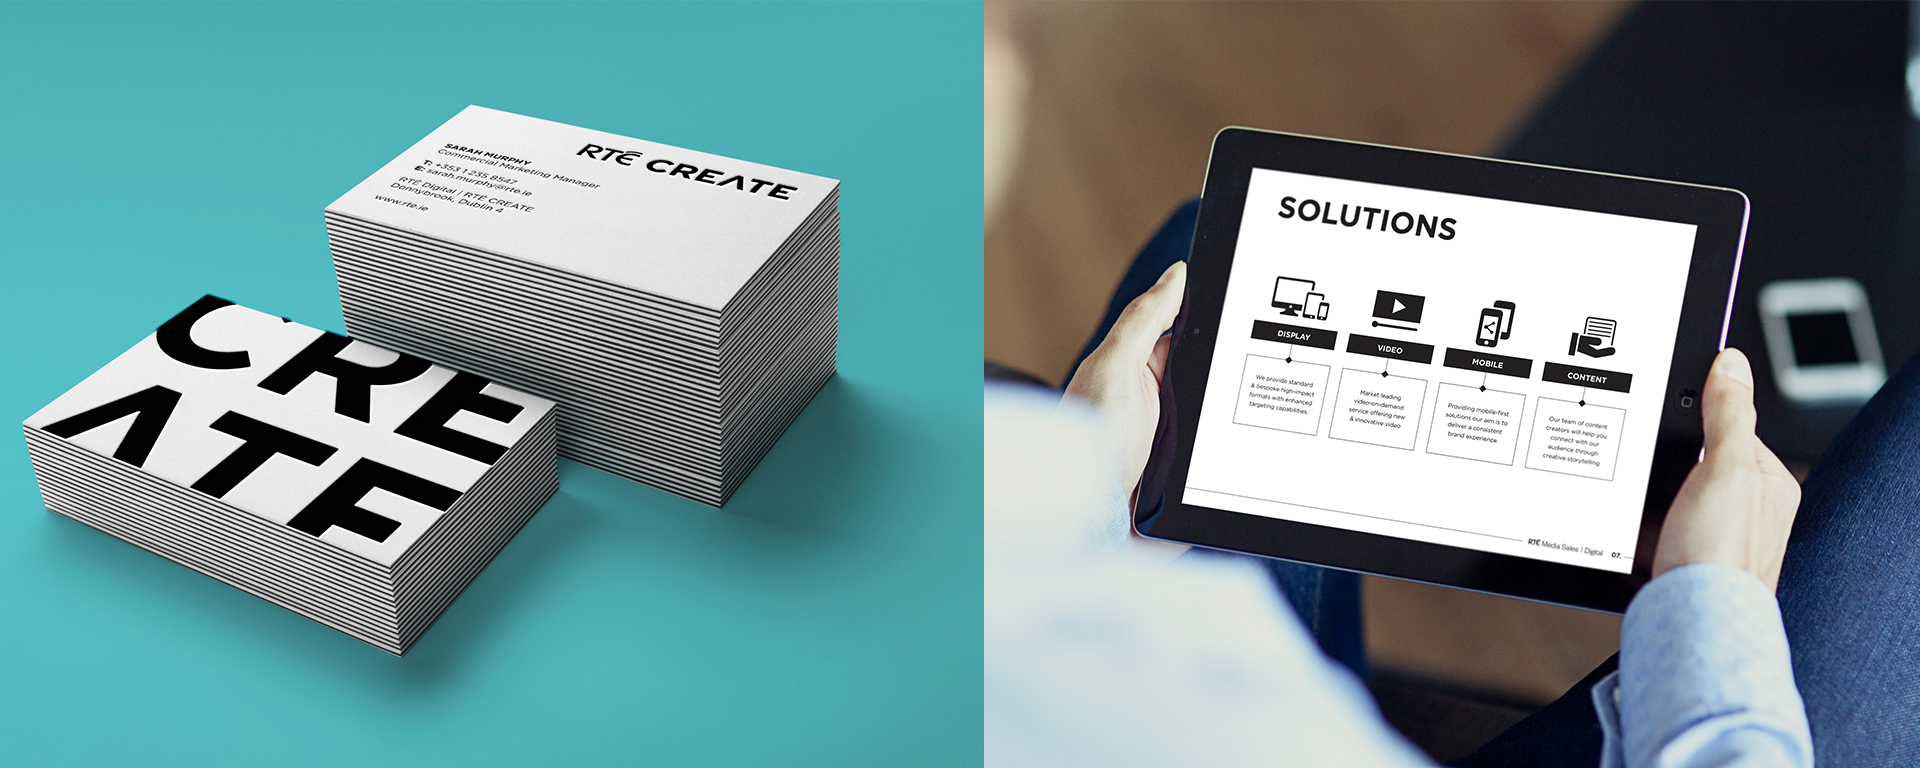 RTÉ Create Business Cards & Presentation Design.